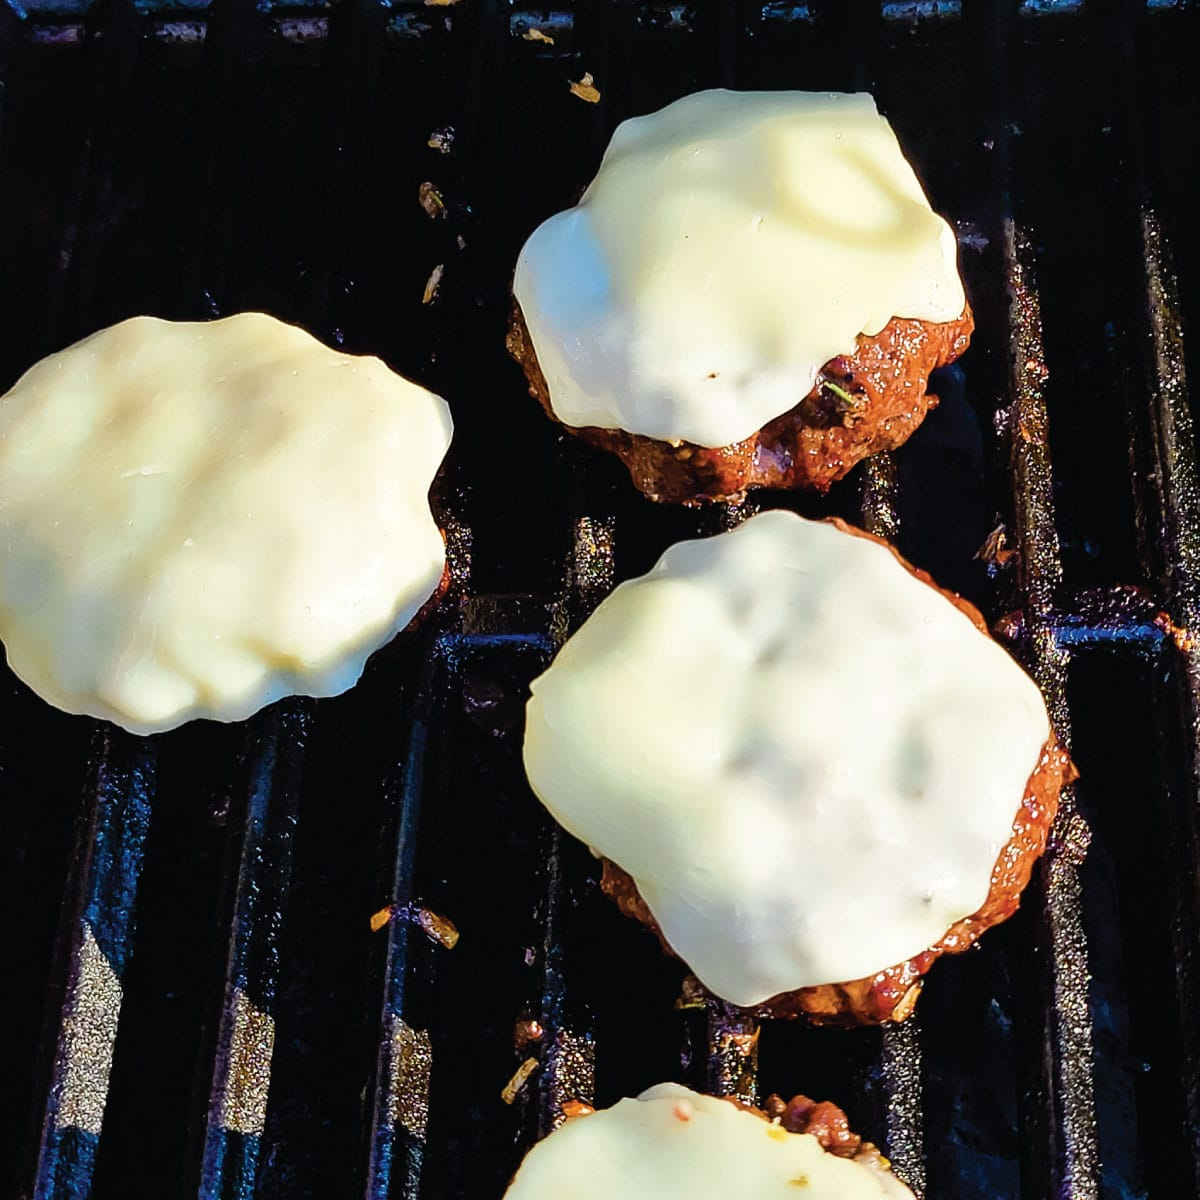 Burgers on the grill with cheese melting on them